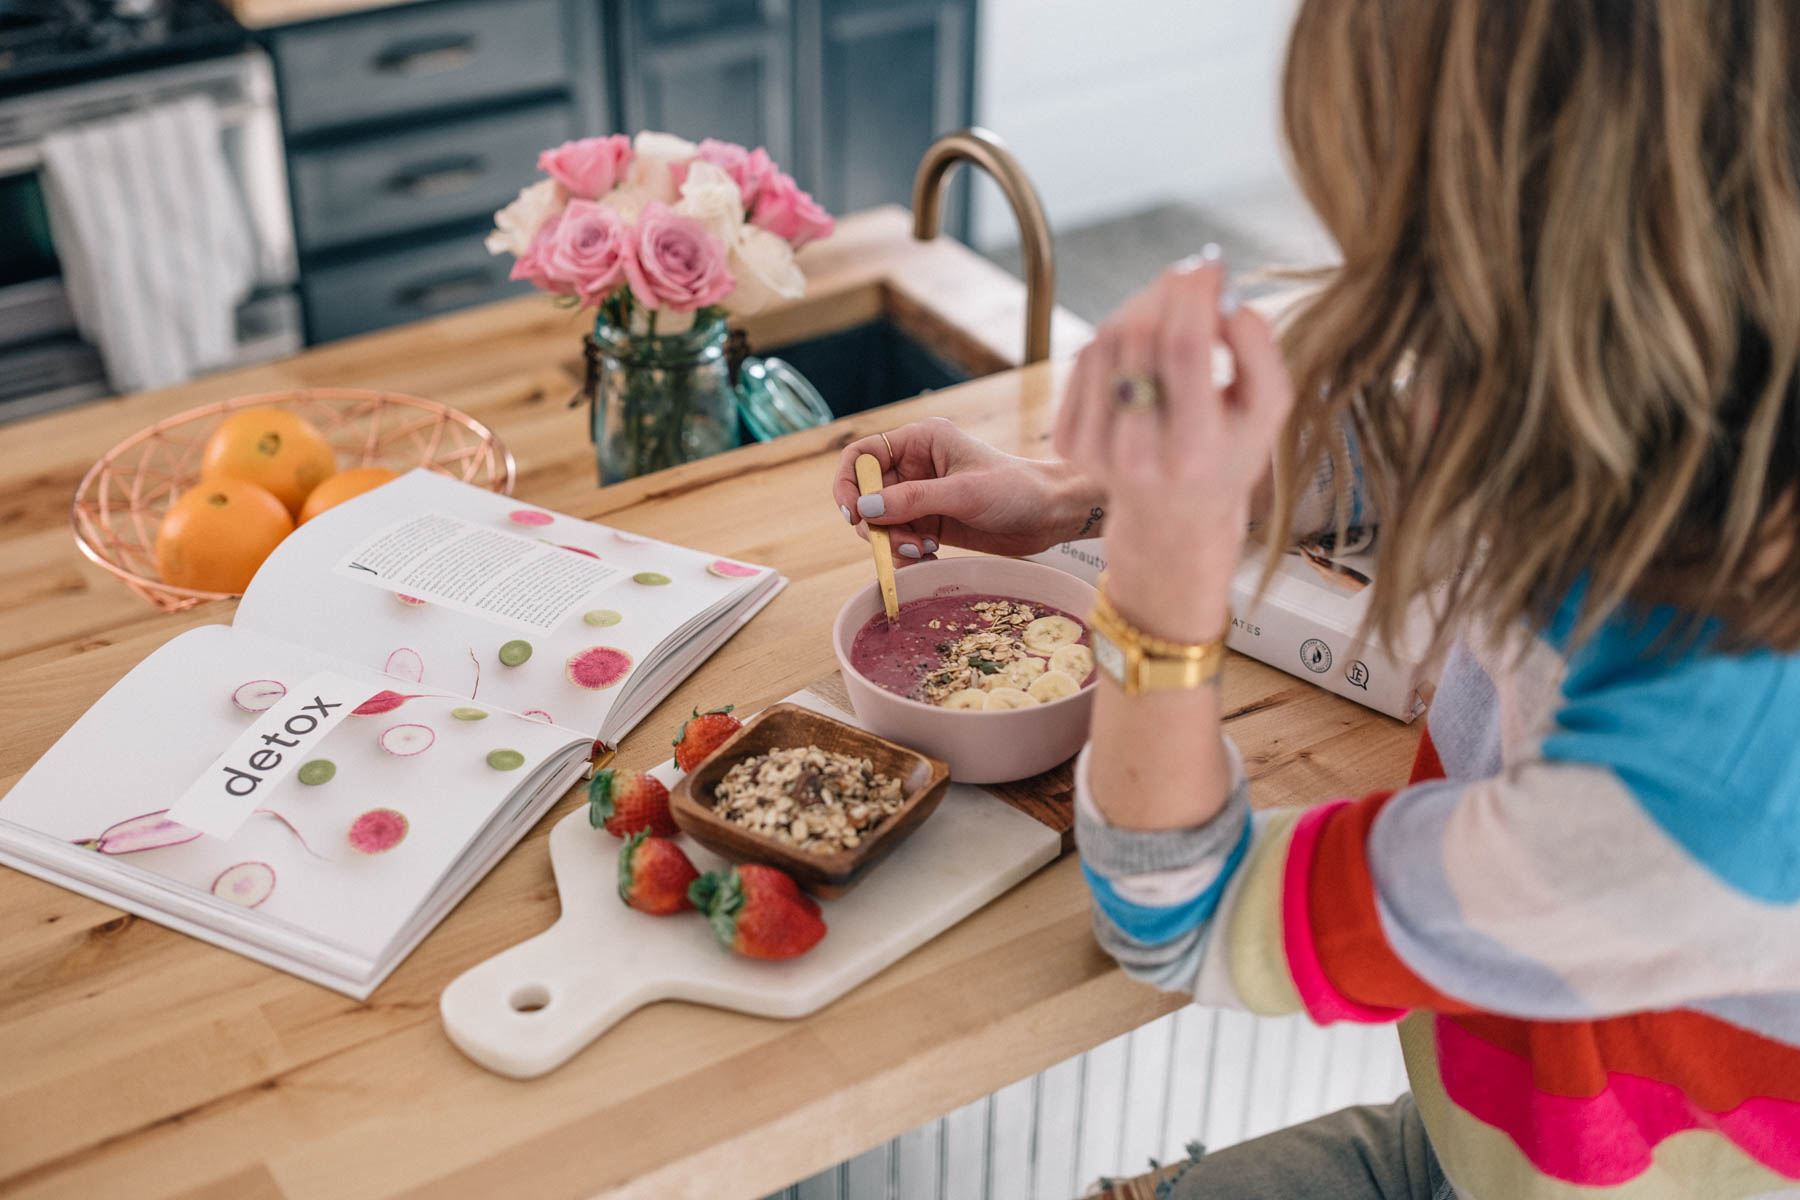 Jess Ann Kirby makes her go-to smoothie bowl recipes for a quick and healthy breakfast or lunch